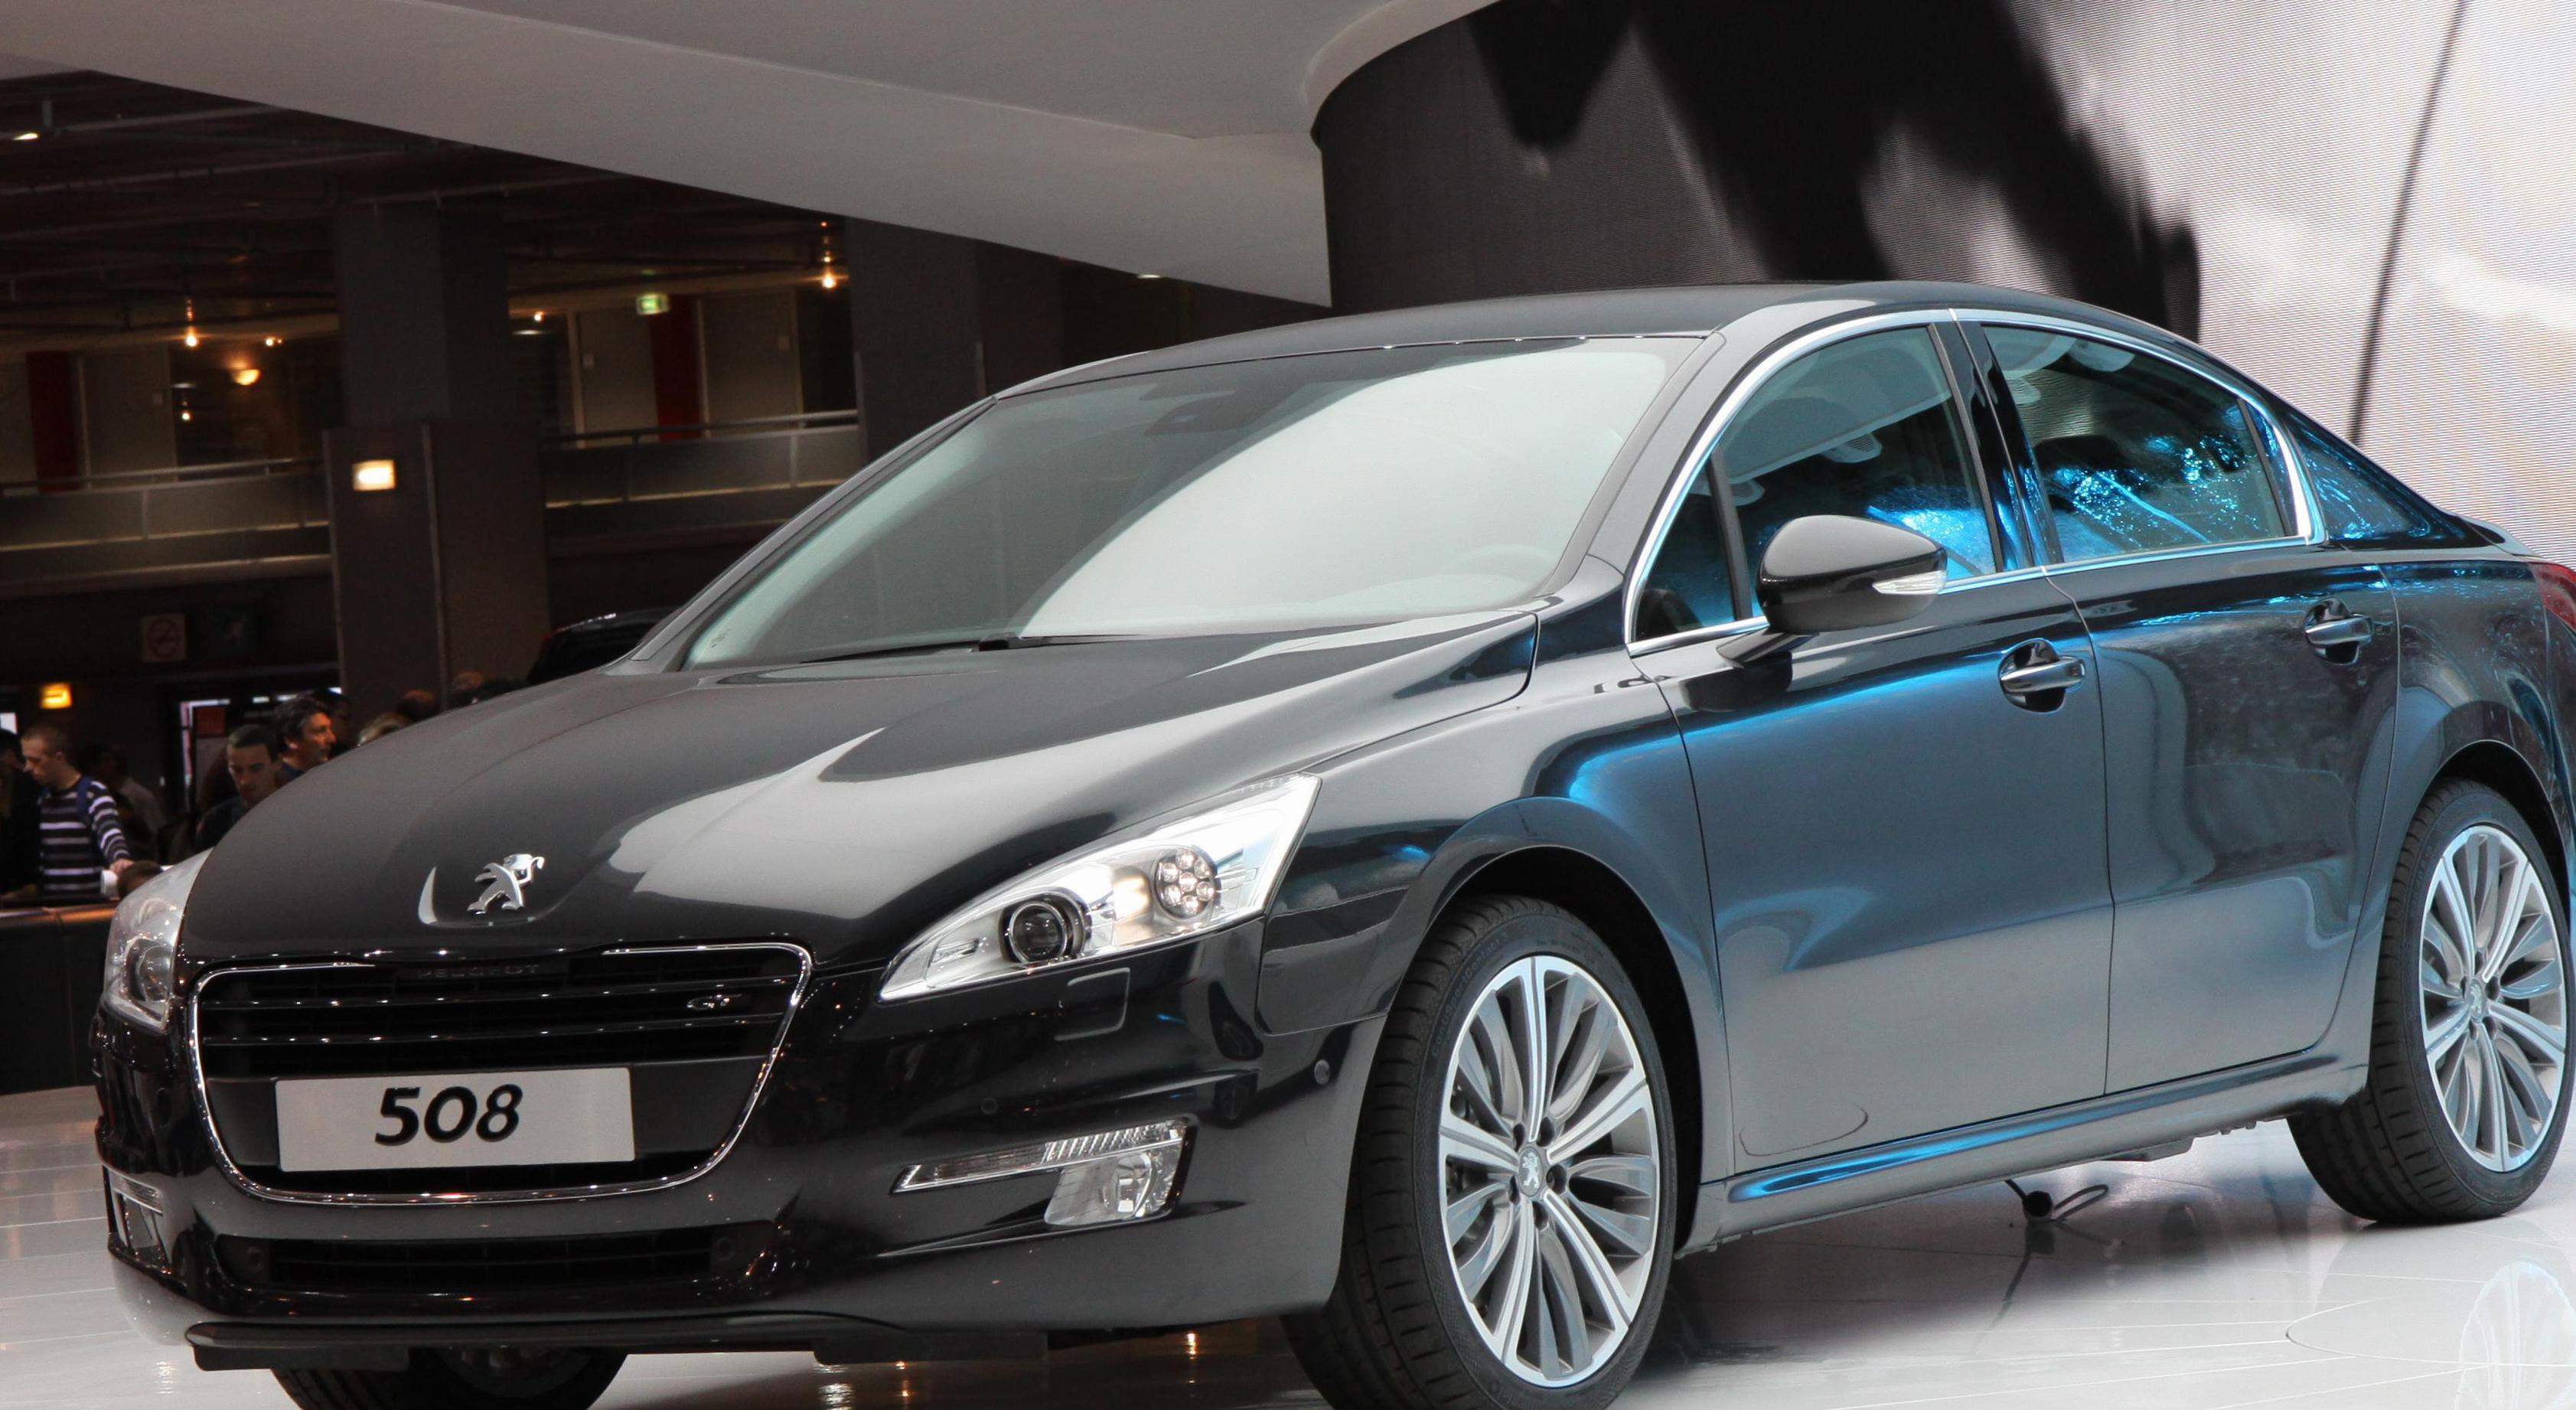 Peugeot 508 Photos and Specs  Photo: Peugeot 508 parts and